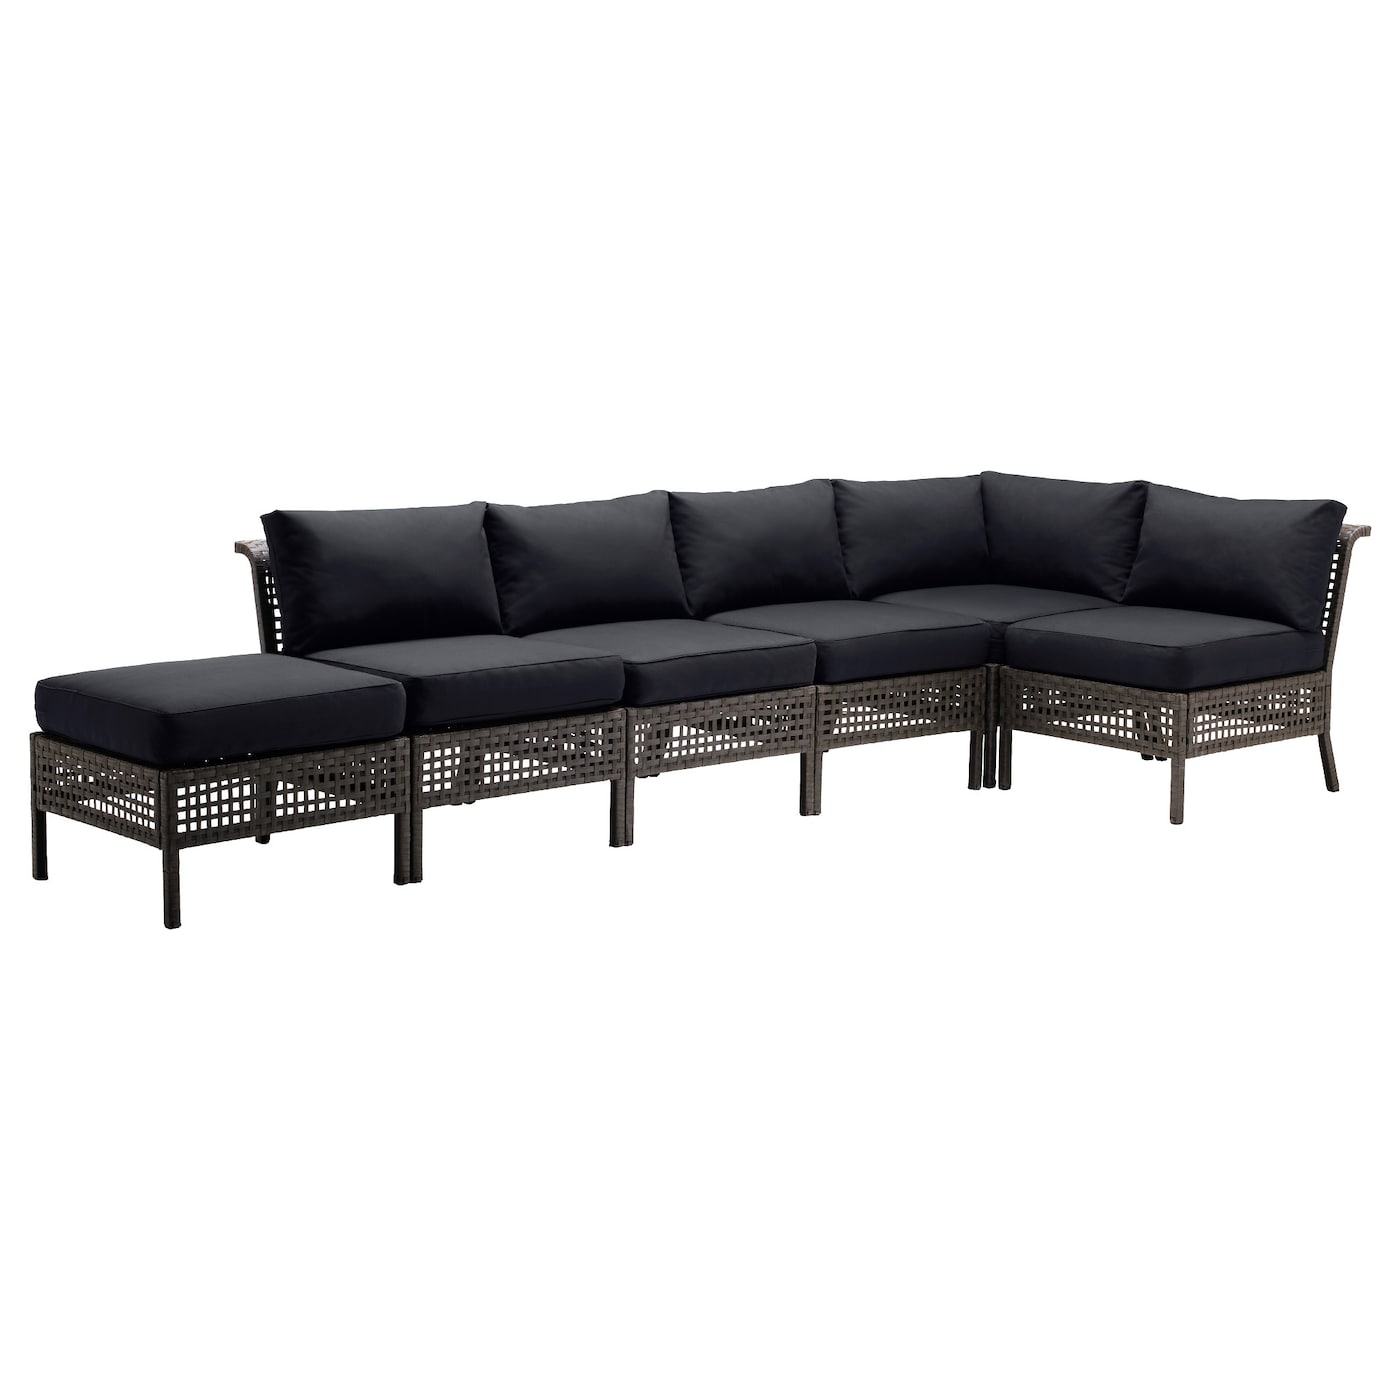 IKEA KUNGSÖ/KUNGSHOLMEN corner sofa 2+3 with stool, outdoor